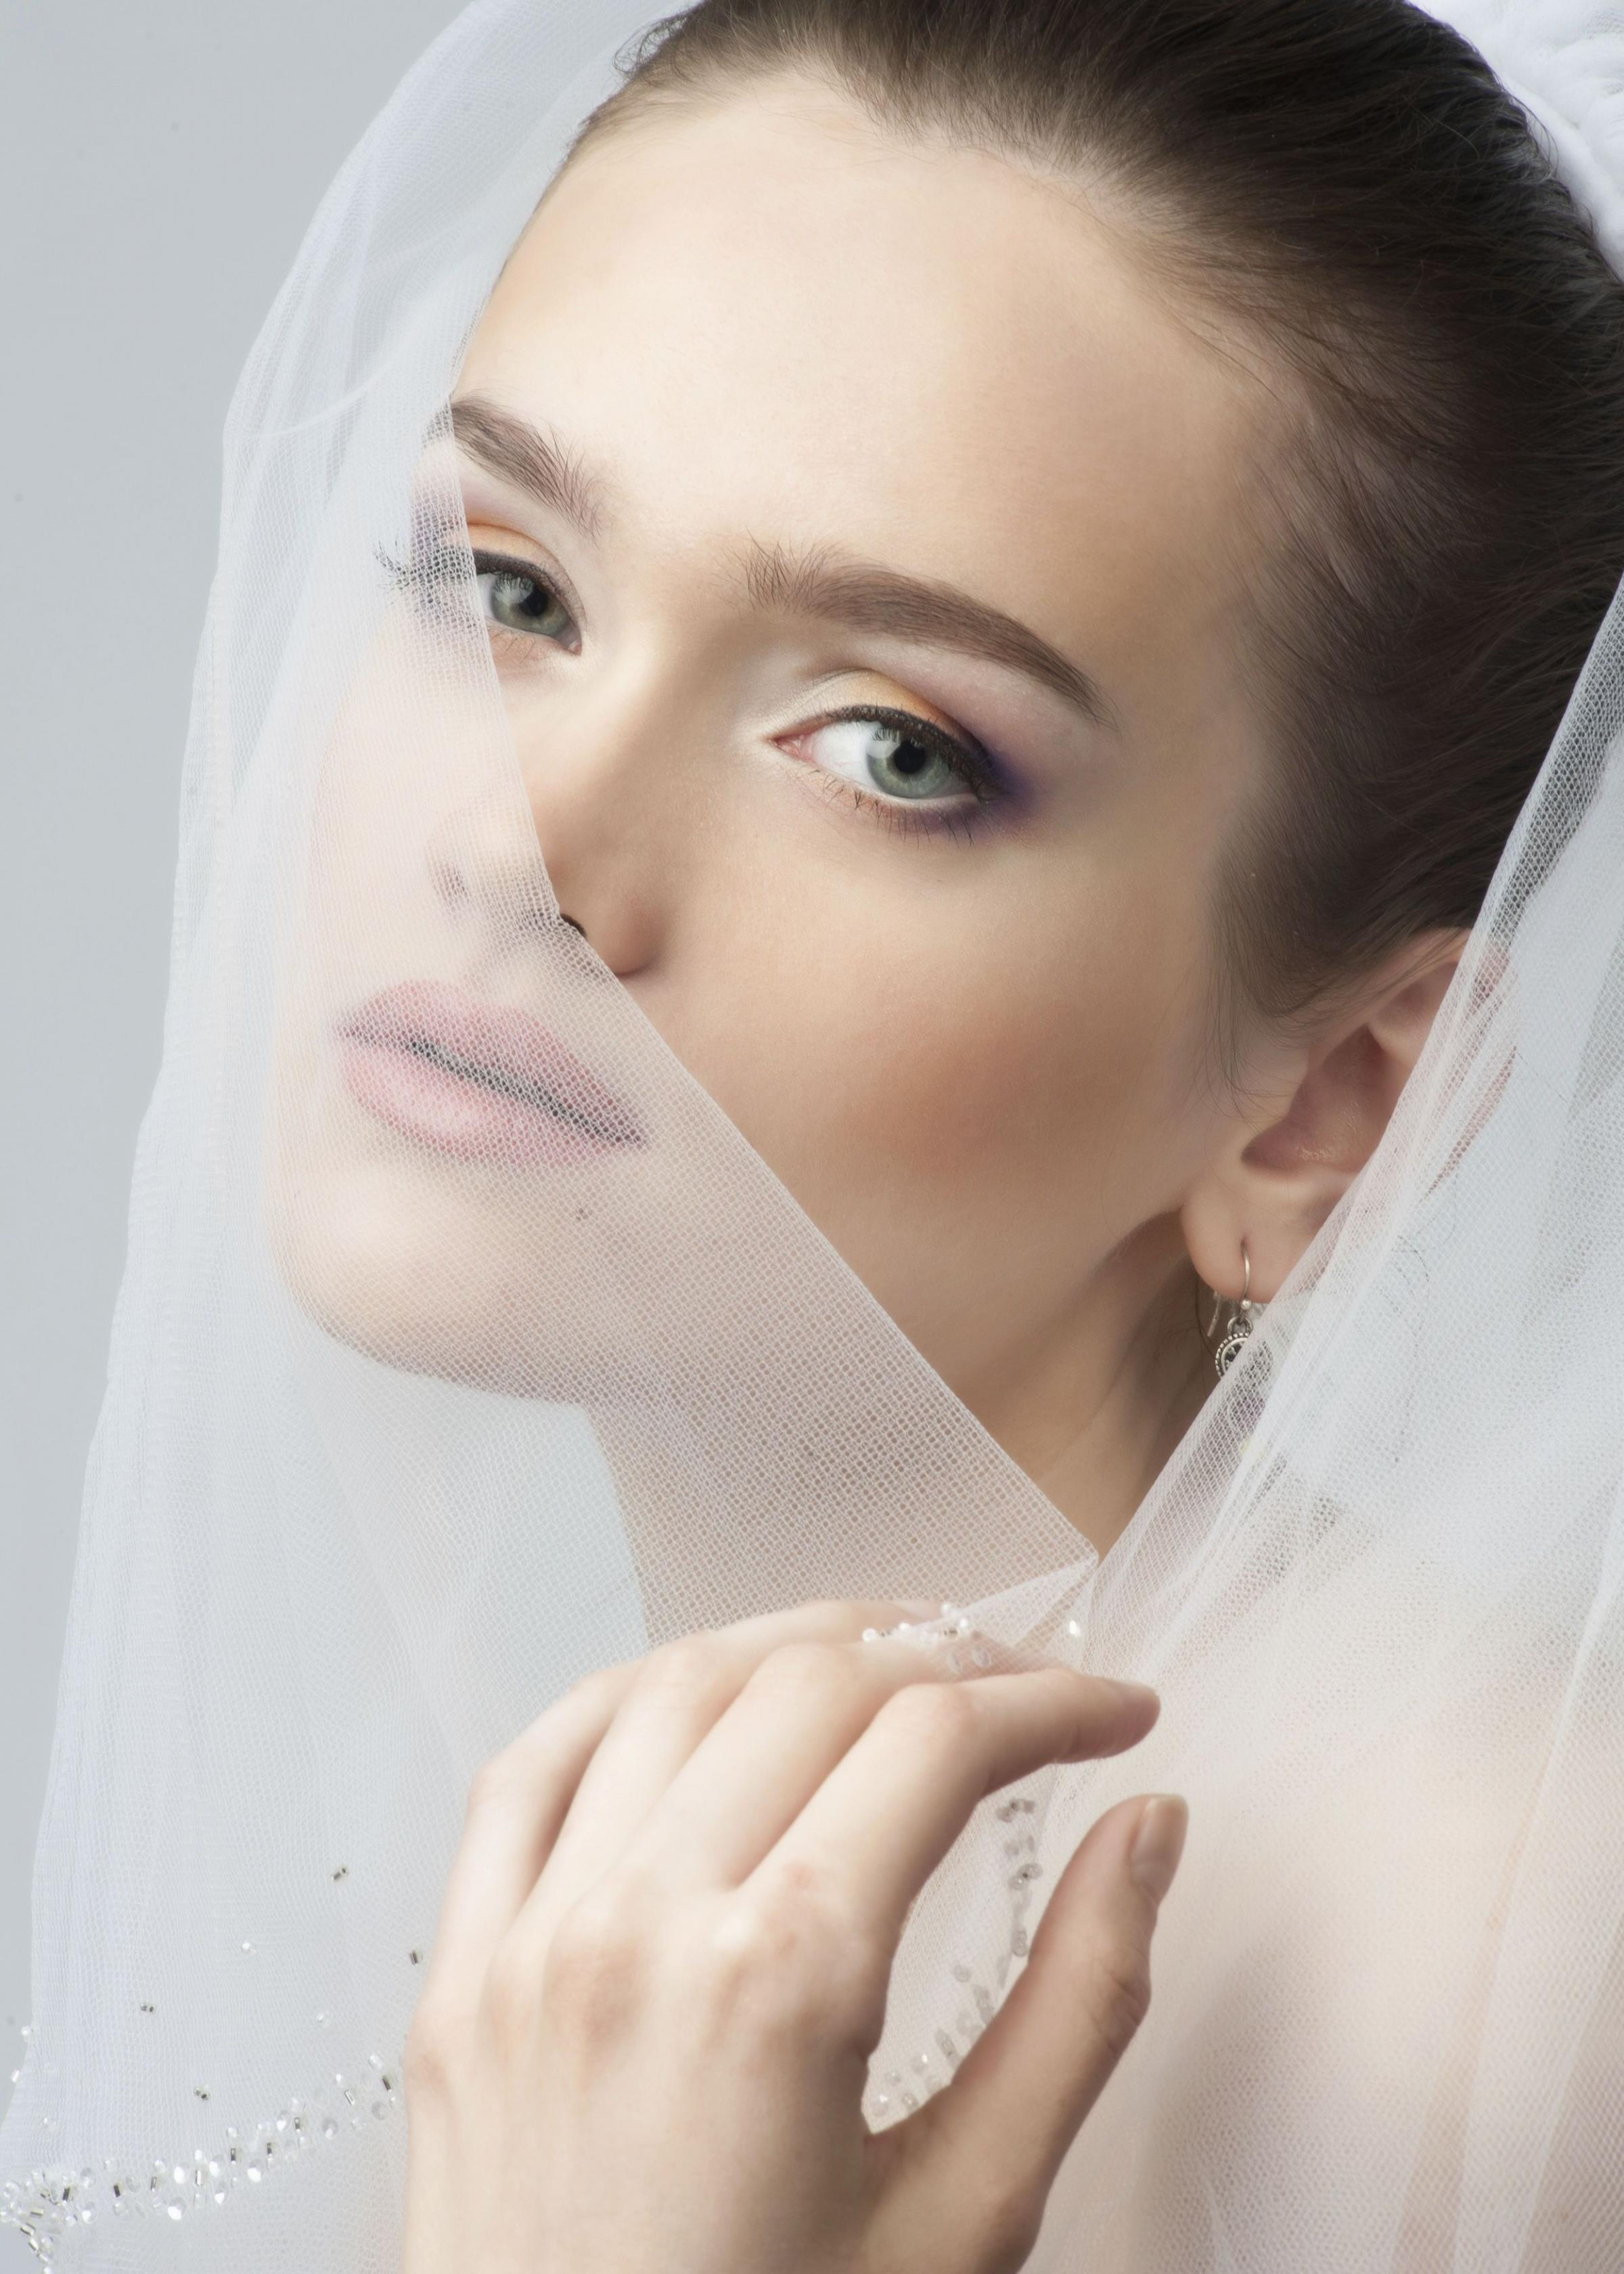 Look perfect on your special day - hair and make-up tips